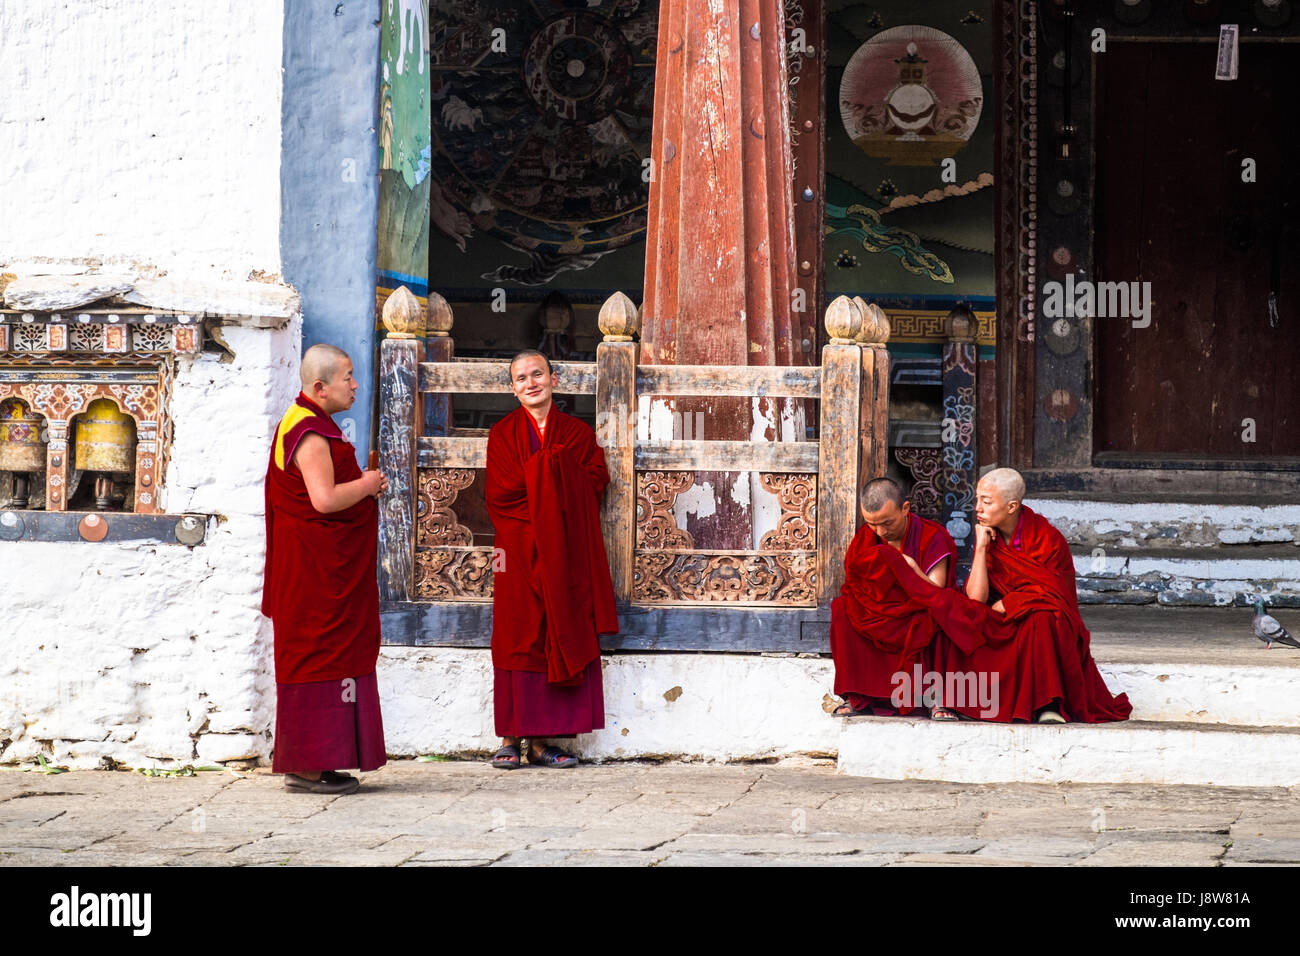 Buddhist monks congregating outside the monastery after a chanting session at Trongsa Dzong, Bhutan. - Stock Image